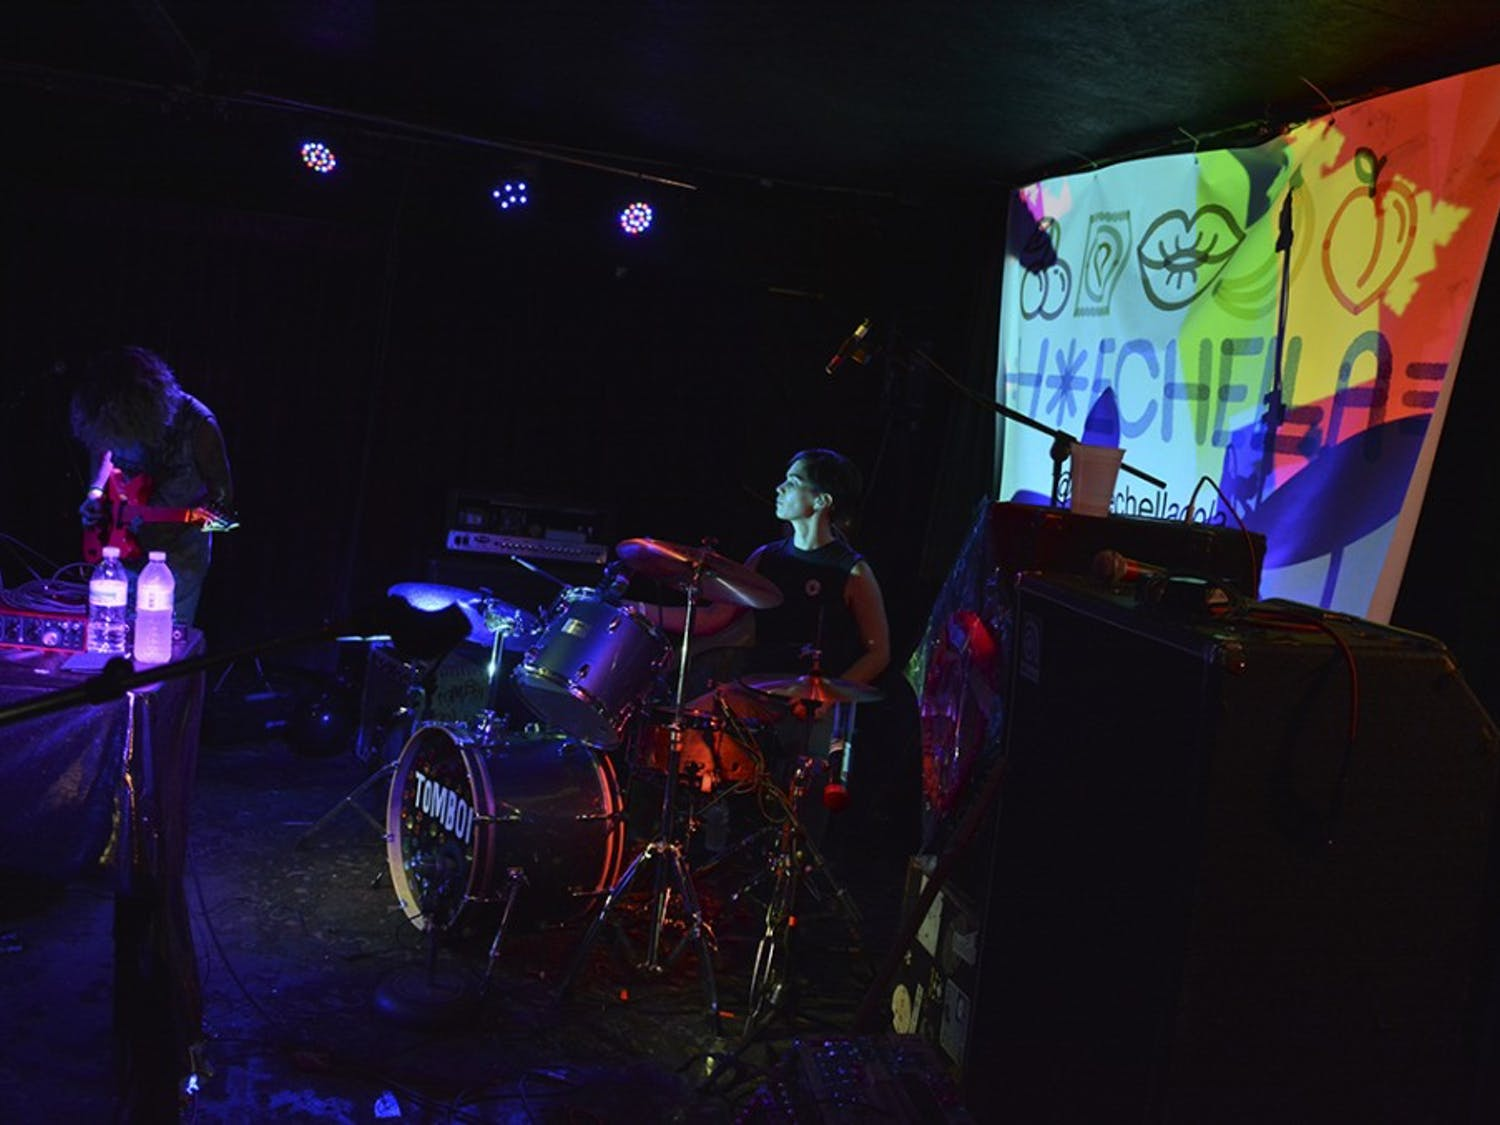 Hoechella, Aug. 26 and 27 at the New Brookland Tavern, is a music event that peacefully protests against body shaming, rape and other issue that people deal with in their day-to-day lives.